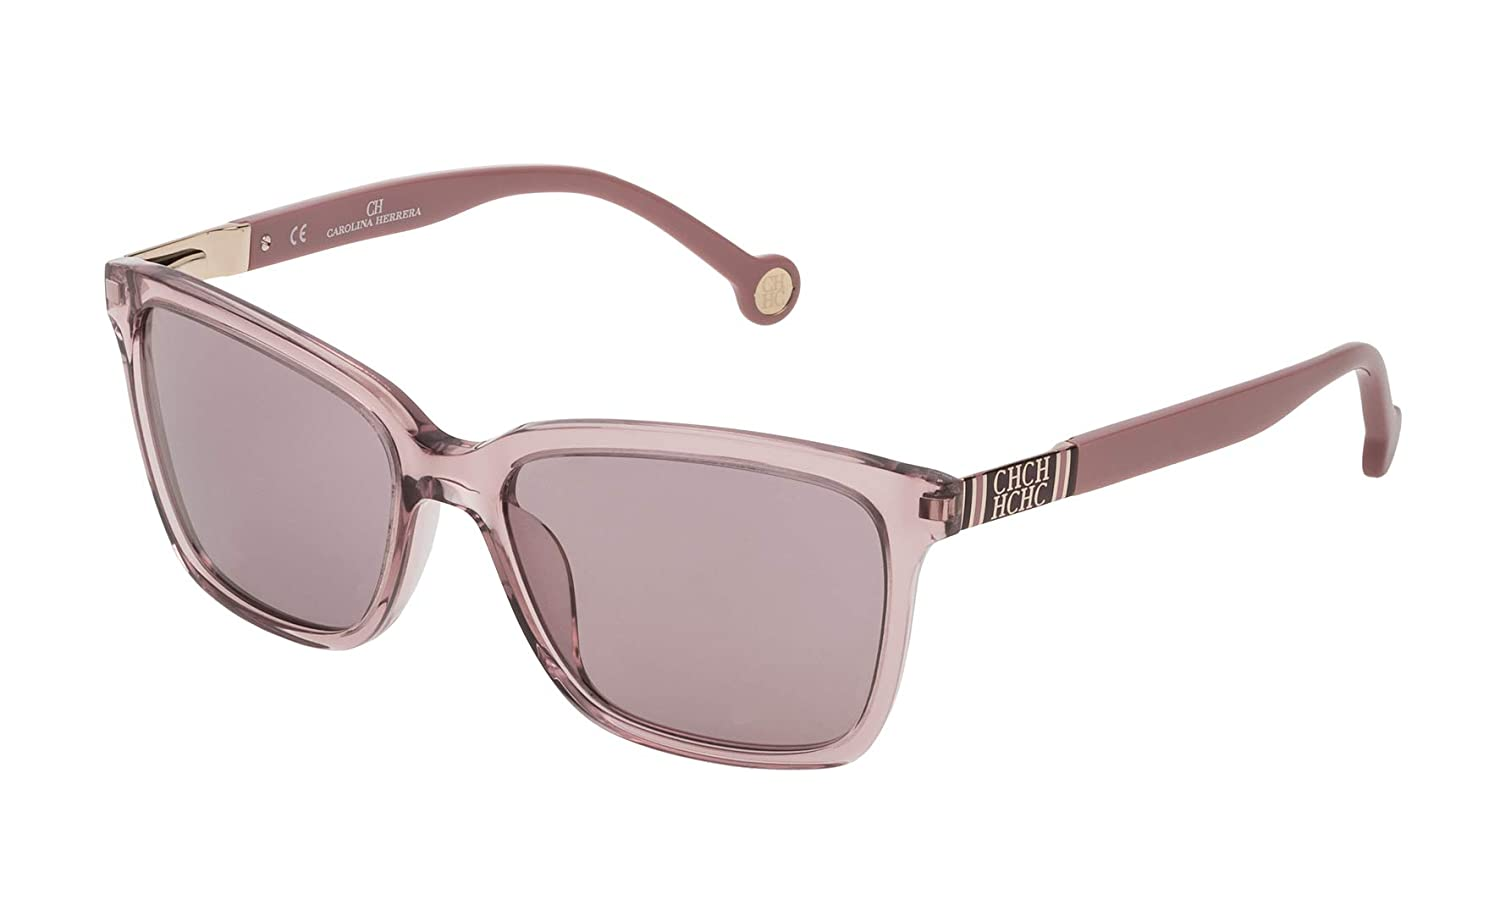 Amazon.com: Carolina SHE692-96DG Herrera - Gafas de sol con ...